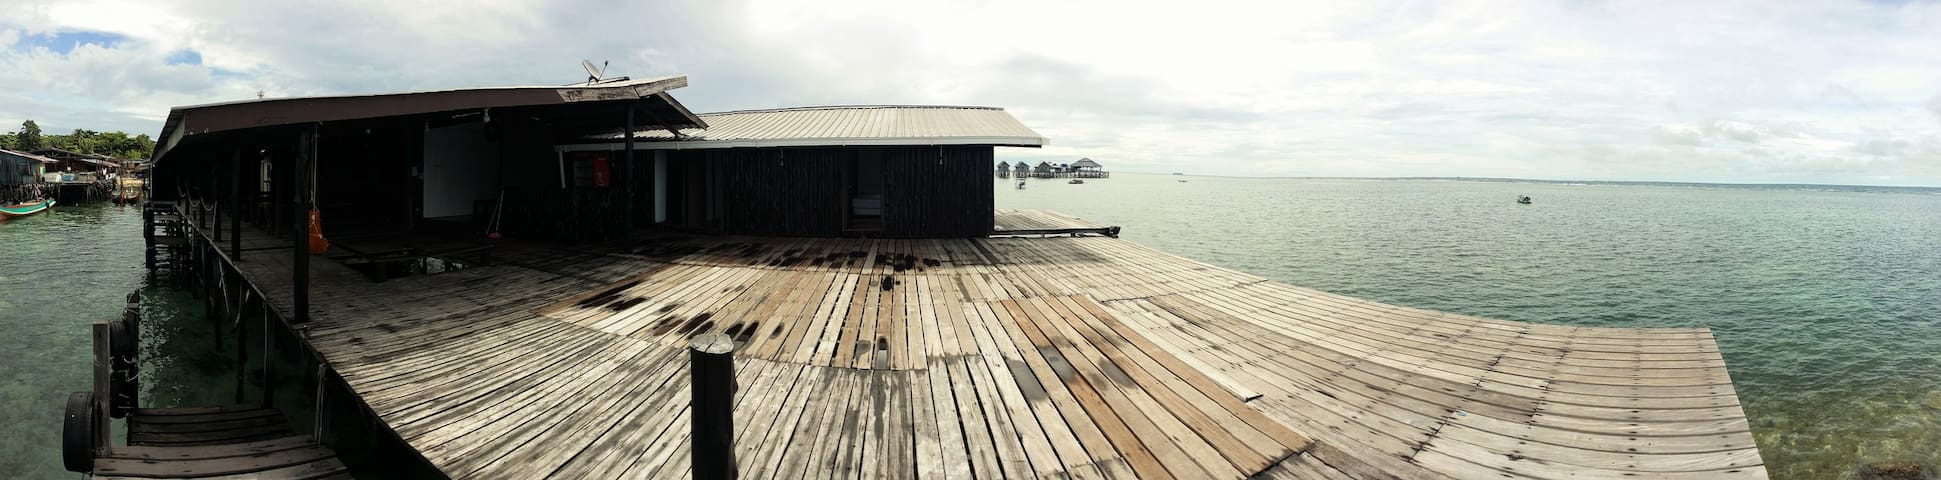 DY mabul lodge - Semporna